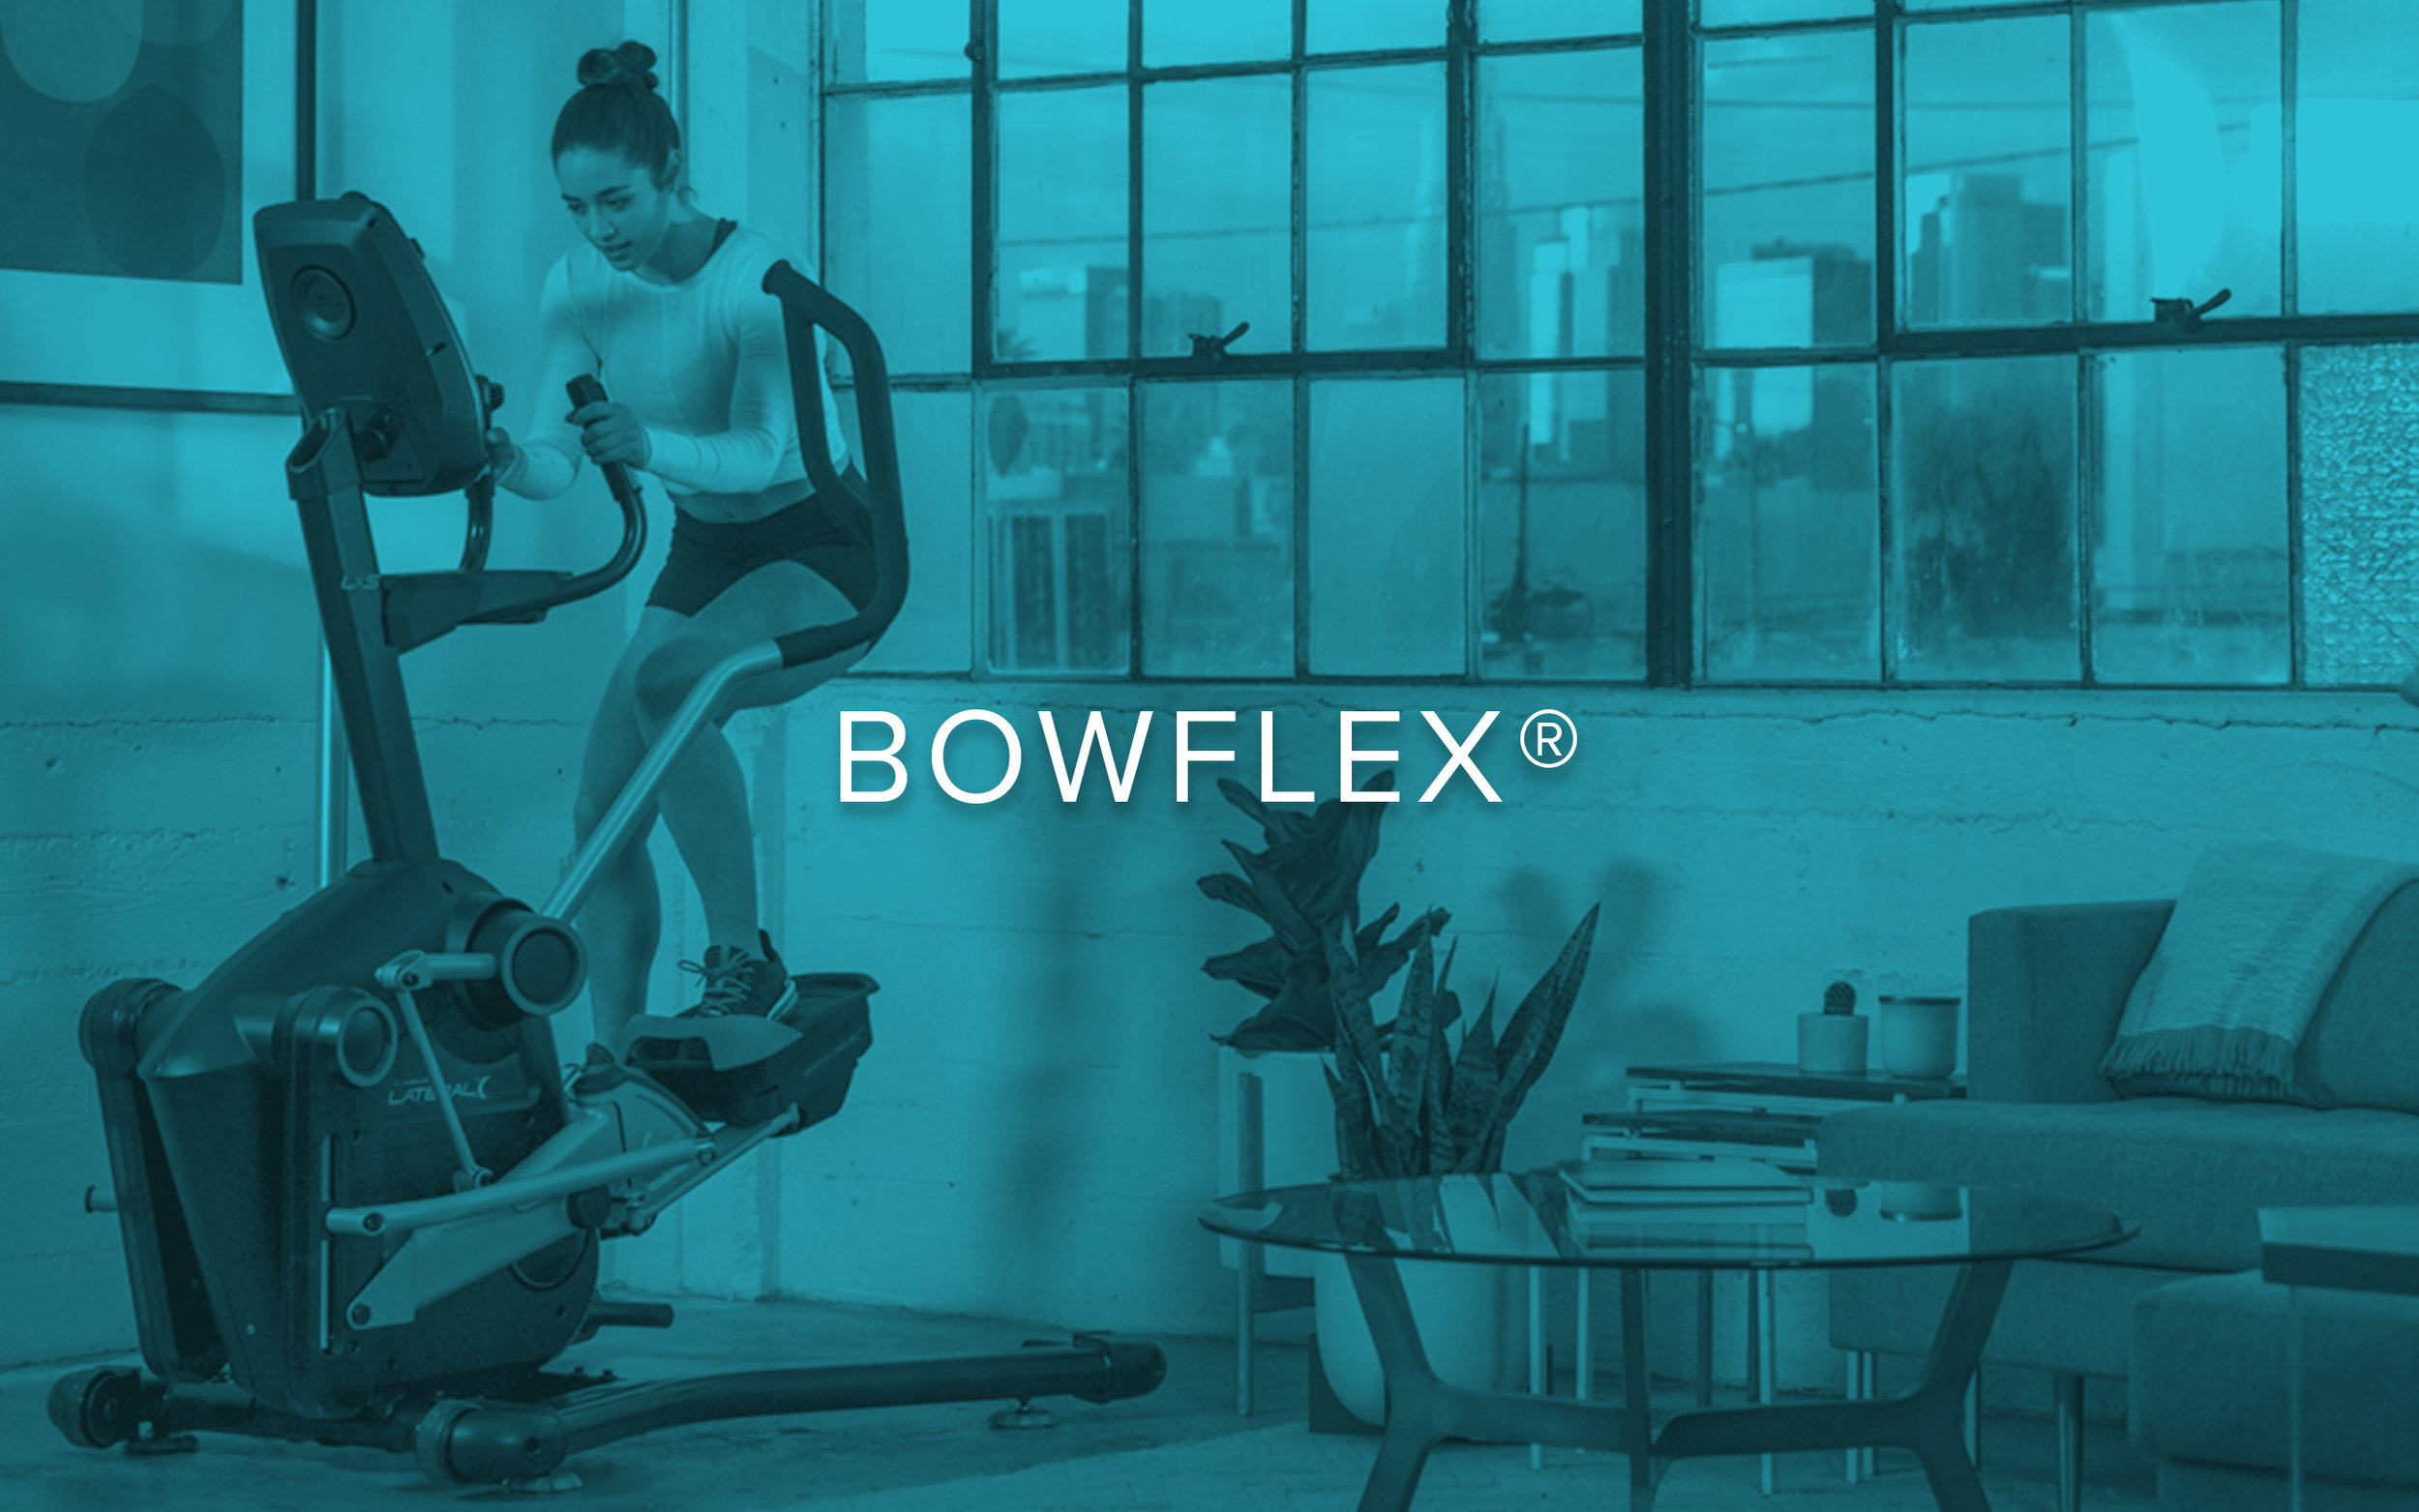 Website_Brand_Menu_Bowflex2.jpg